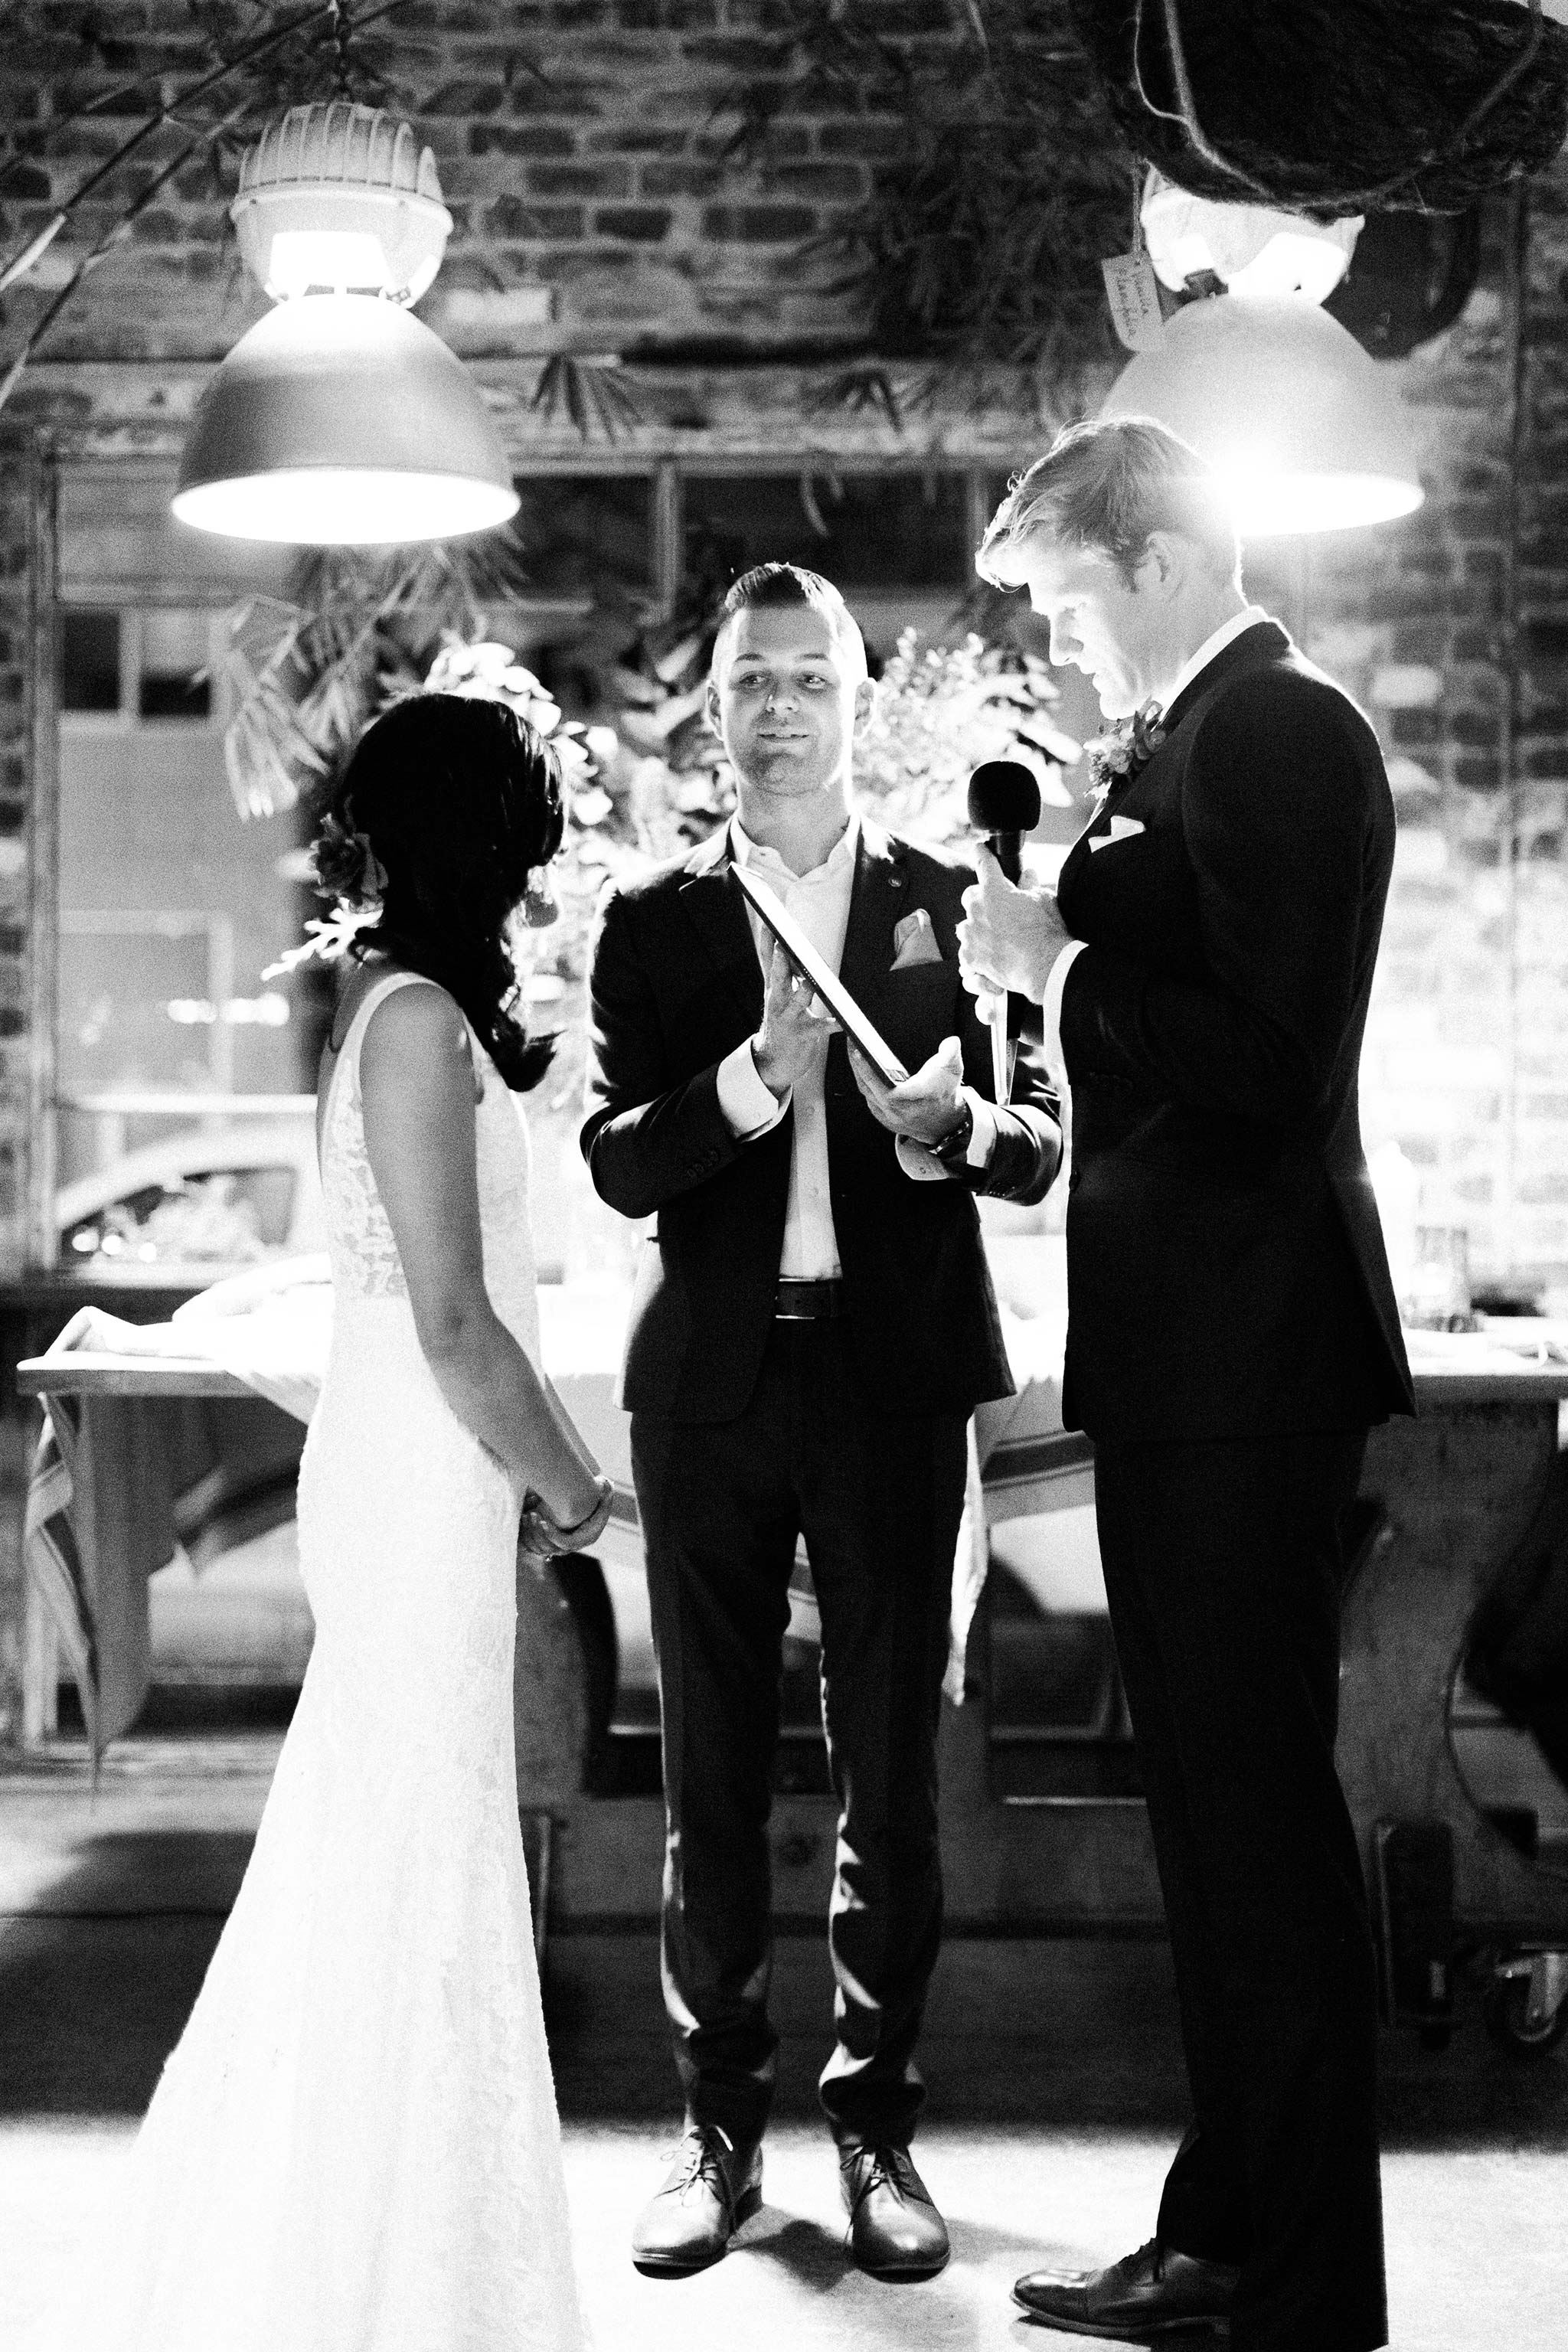 Melbourne-North-Carlton-East-Elevation-Surprise-Winter-warehouse-Wedding-photographer-vow